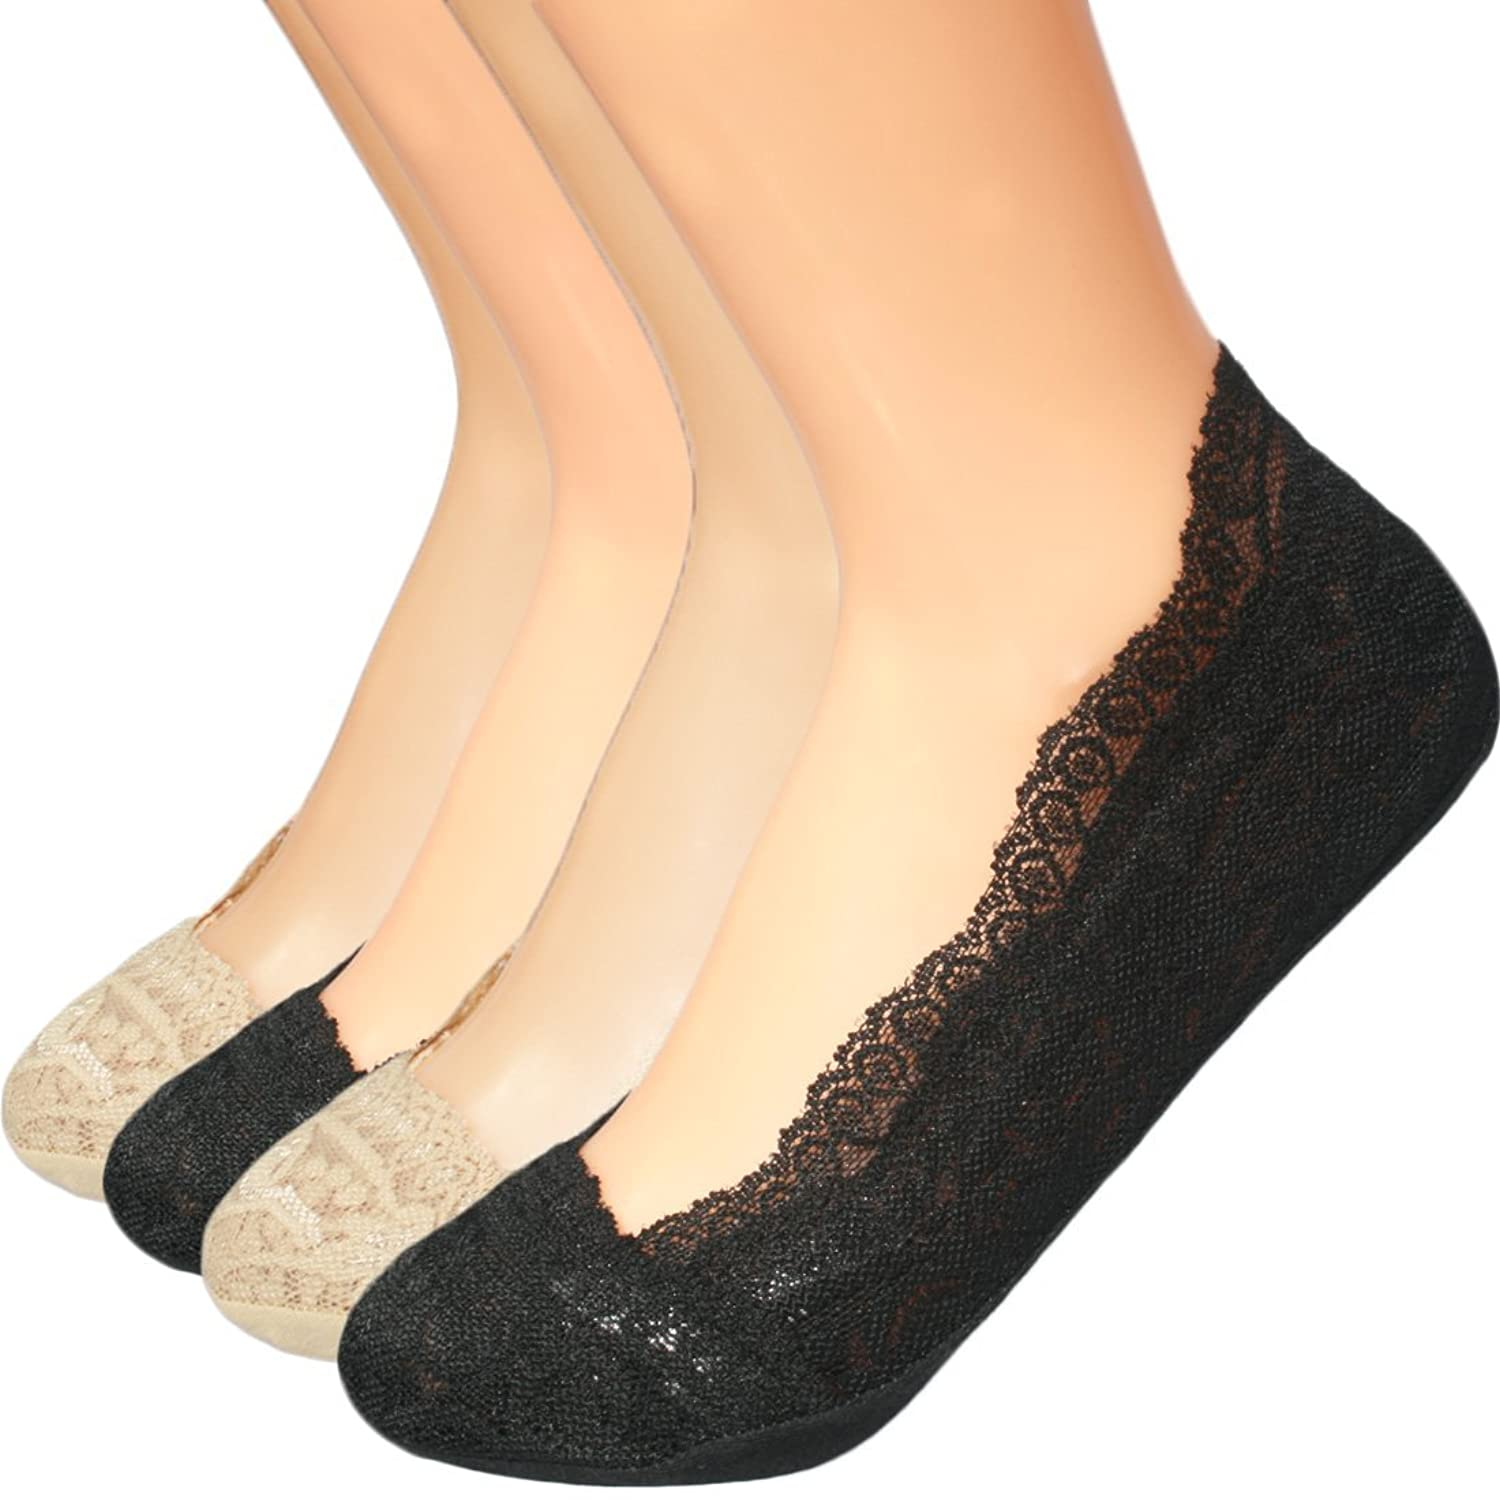 654a538ea5 Ultimate Non-skid Design - Silicone grip all around the sock cuff - Makes  the socks stay on your feet much better. Lace toe cover - Dainty and  feminine